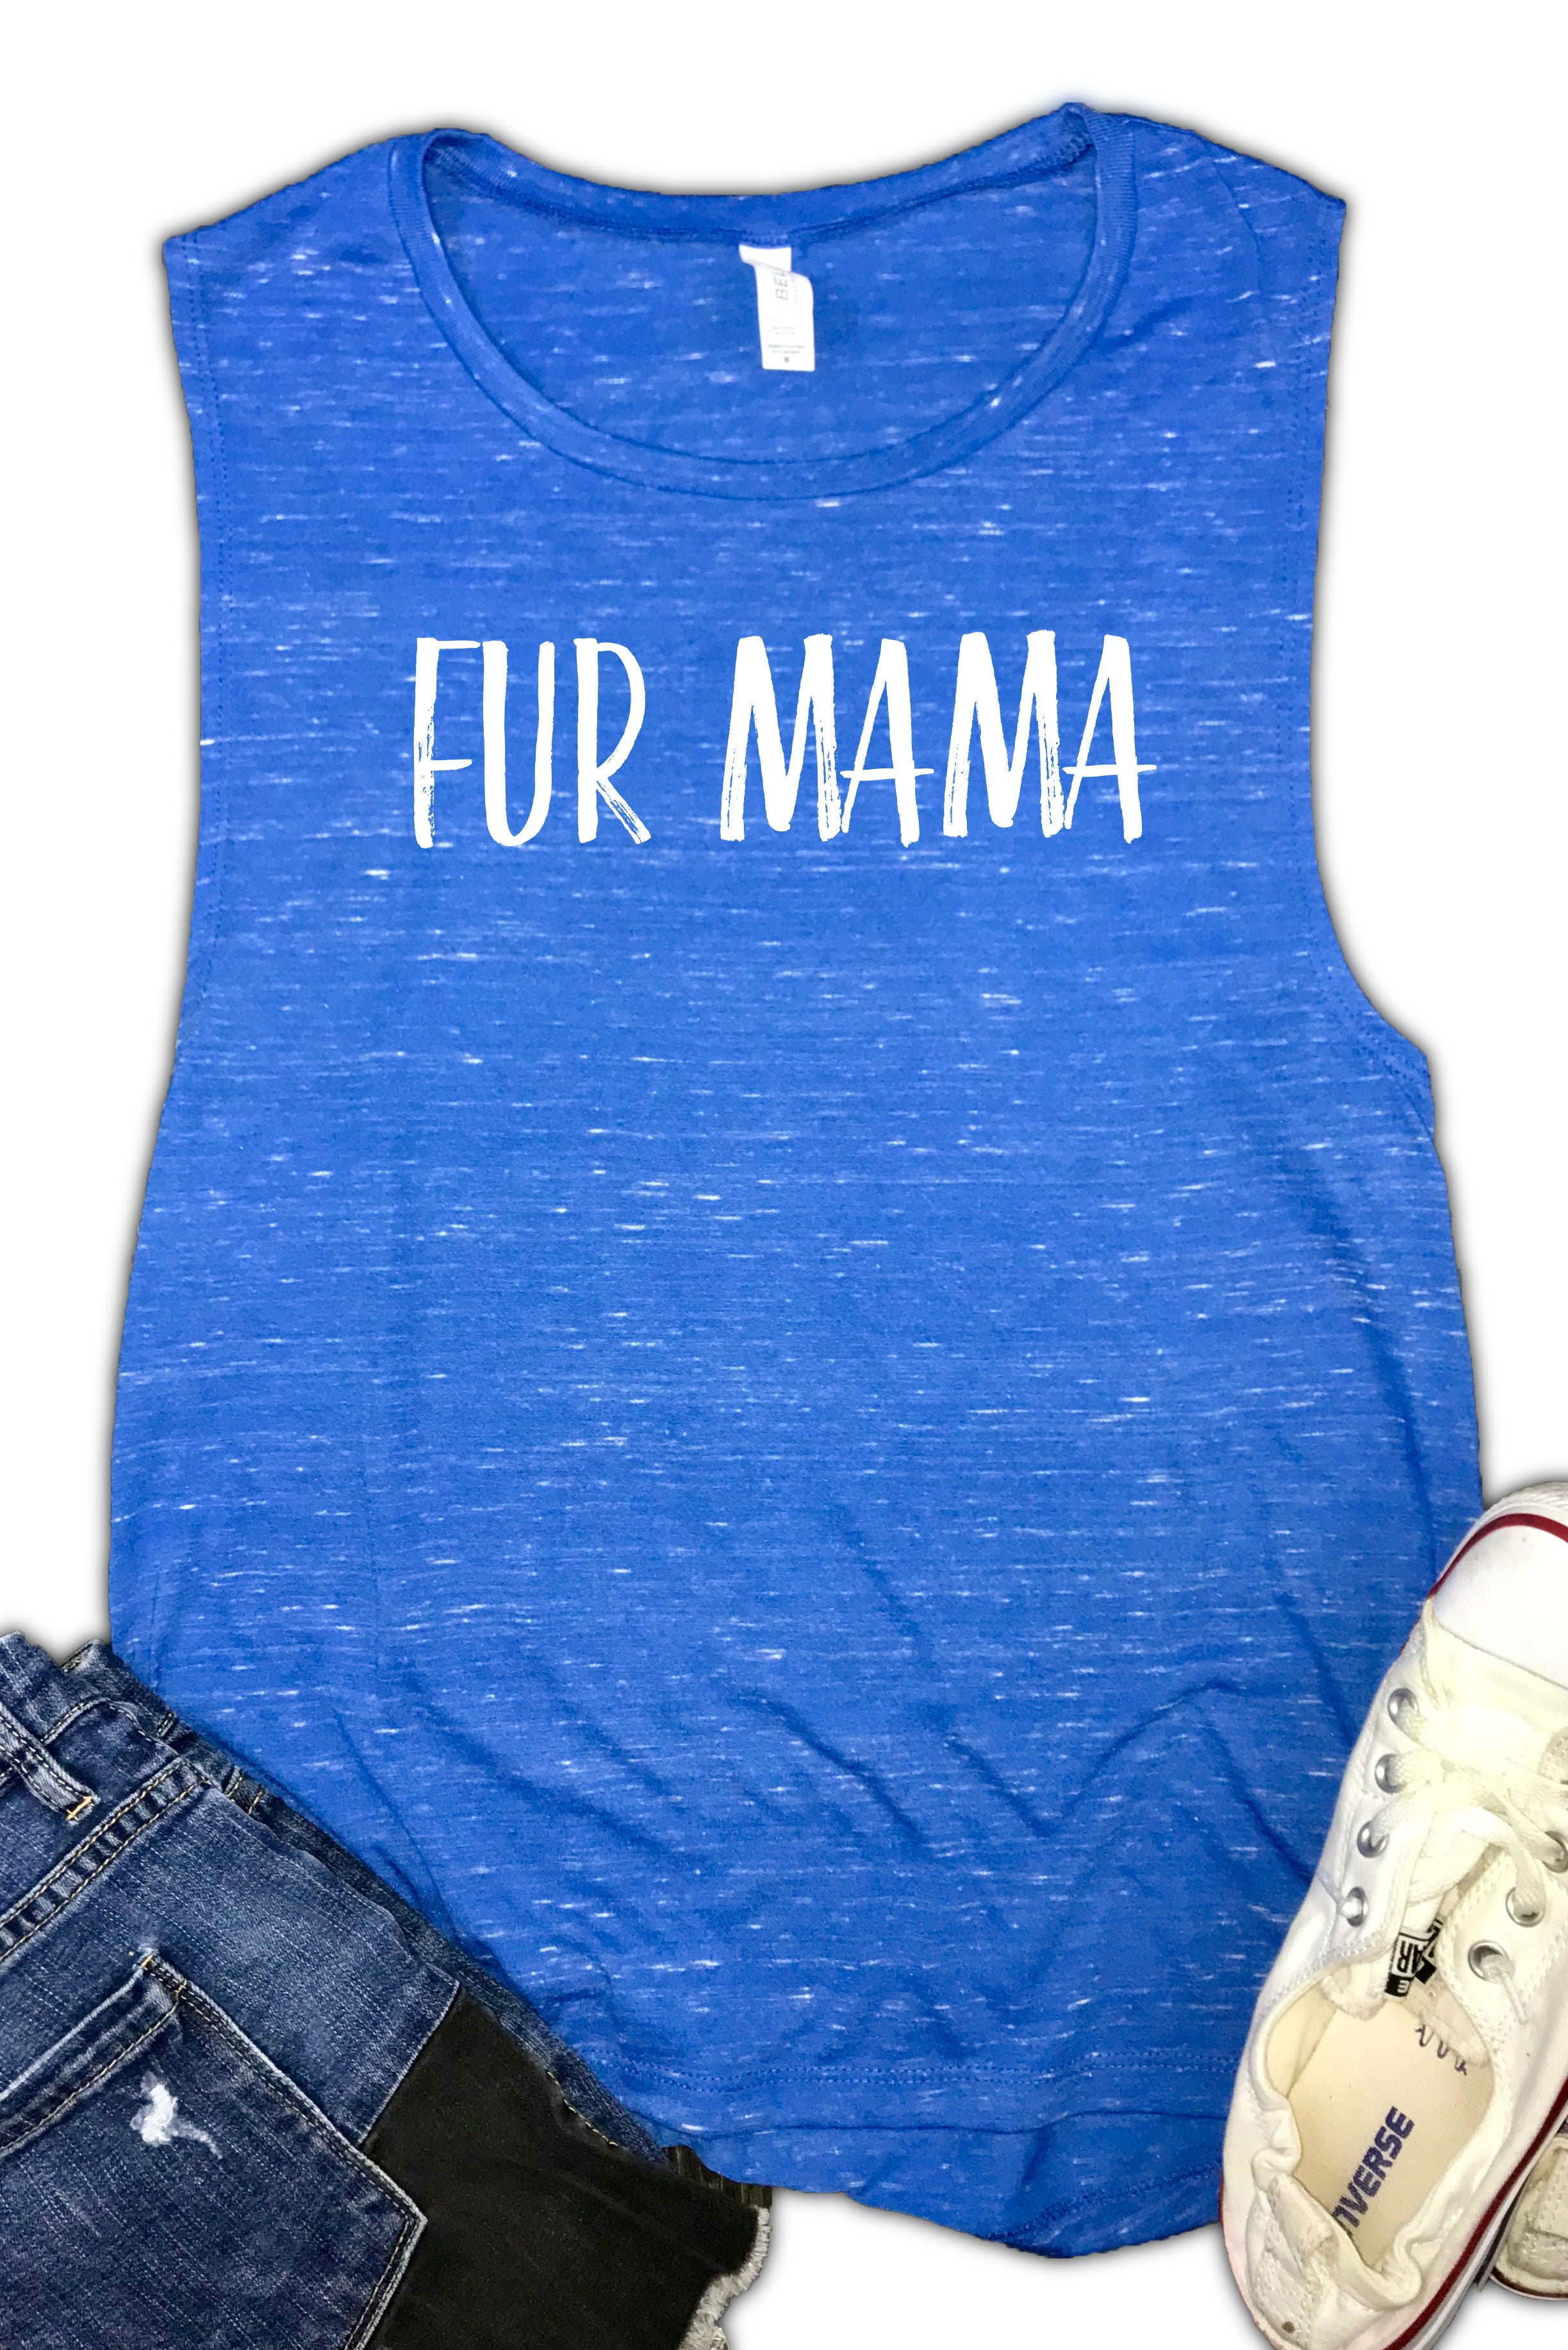 Fur Mama - Oxford Blue with White - BACKORDER *Stocks In June